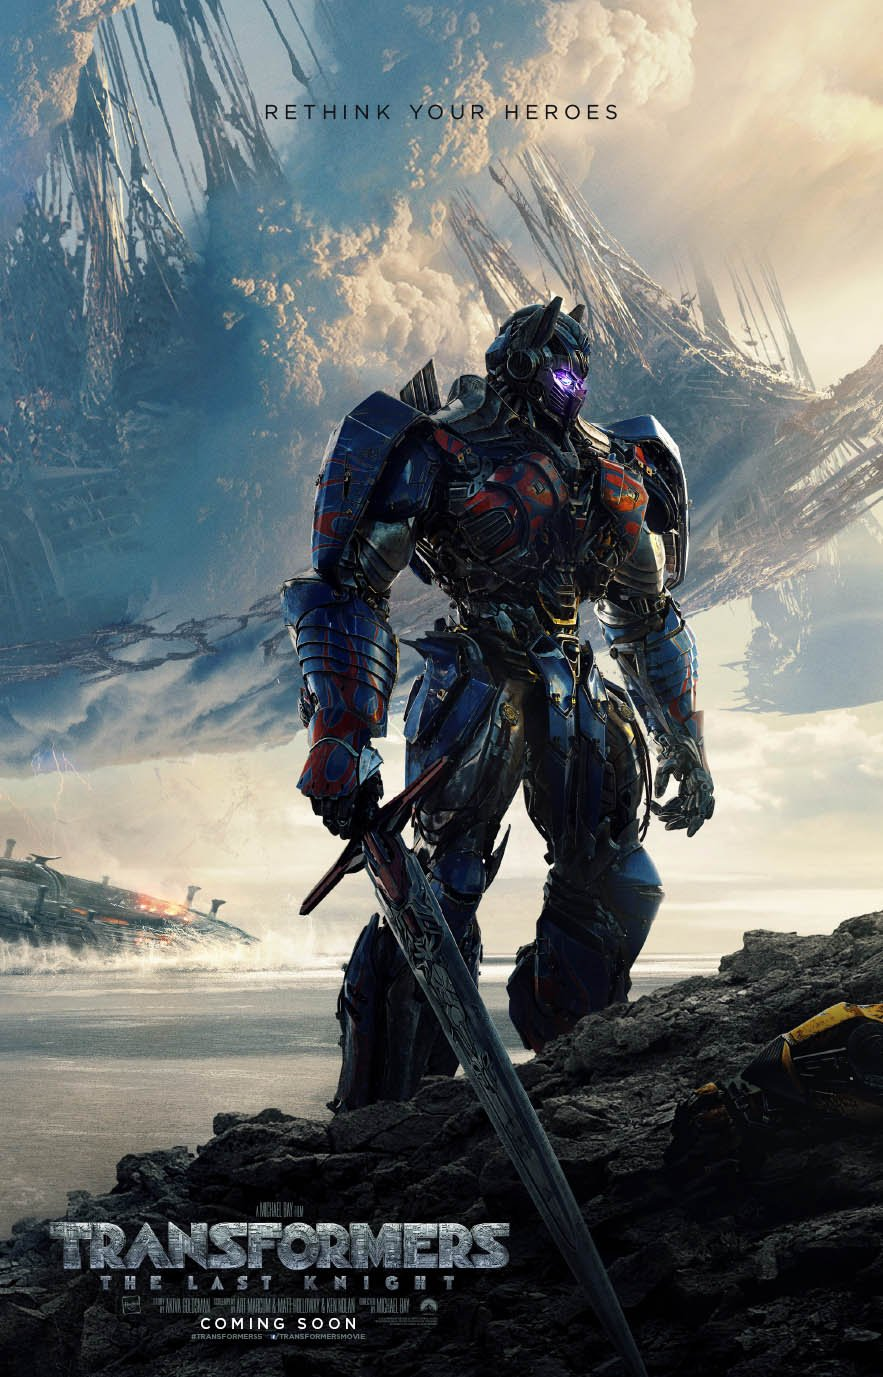 Transformers – The Last Knight poster